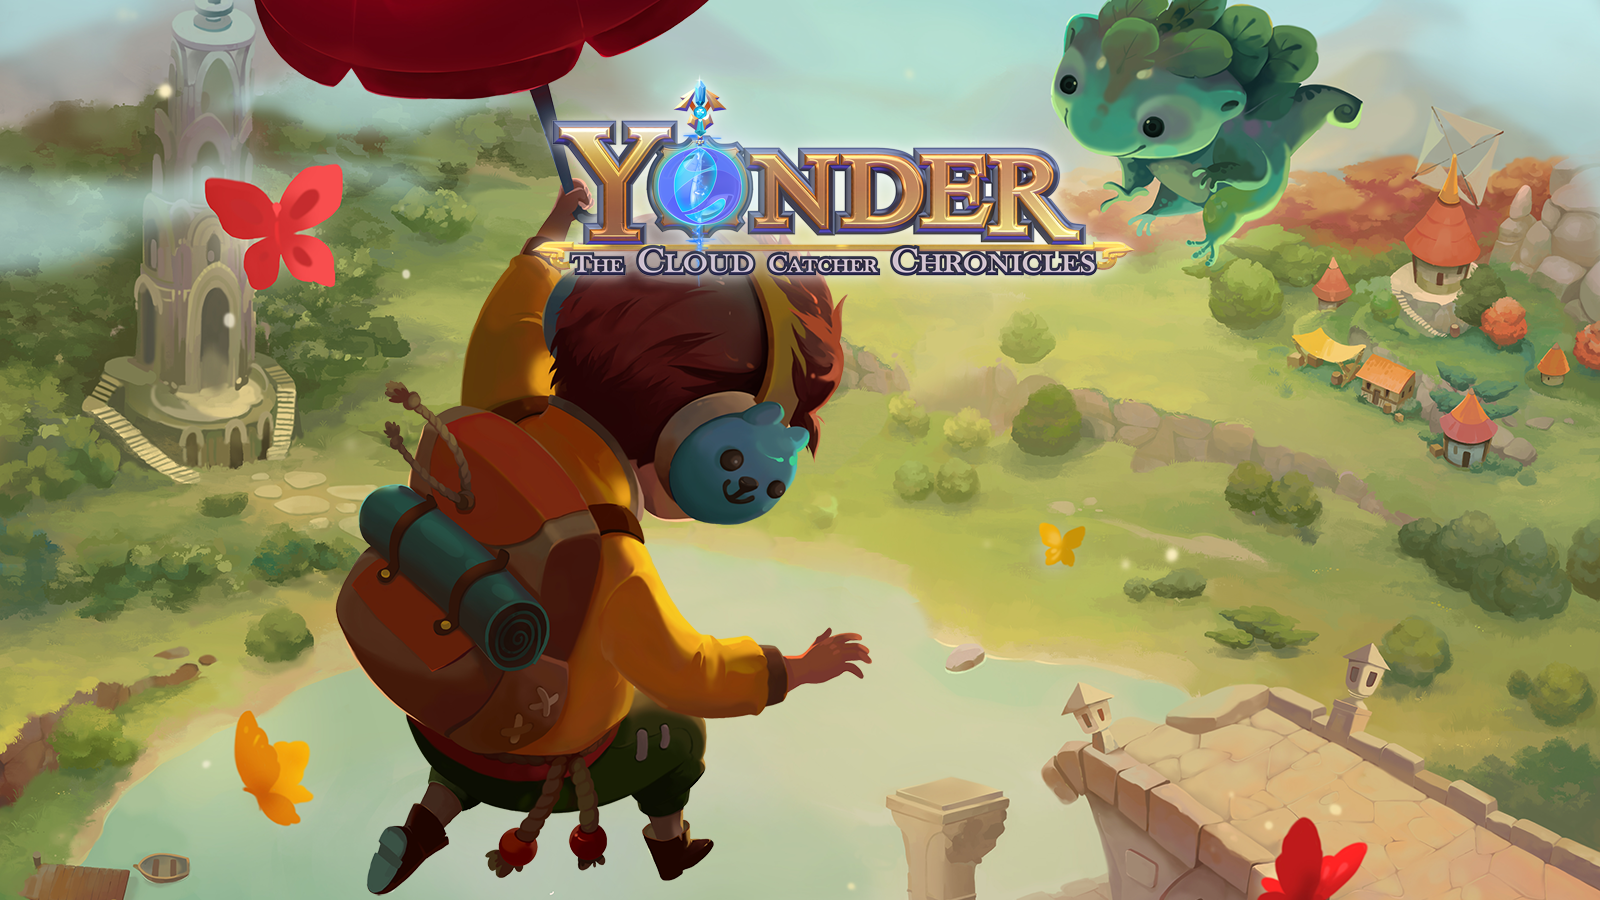 yonder the cloud catcher chronicles game ps4 playstation